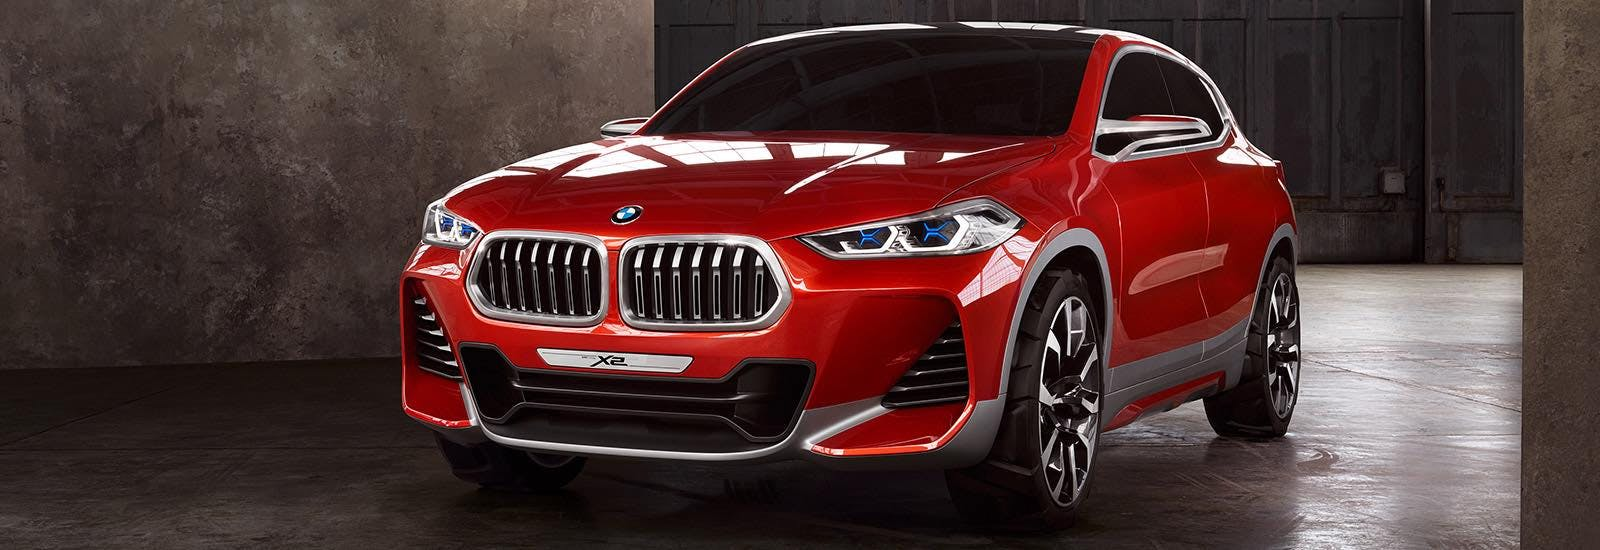 2018 bmw x2 suv price specs and release date carwow. Black Bedroom Furniture Sets. Home Design Ideas